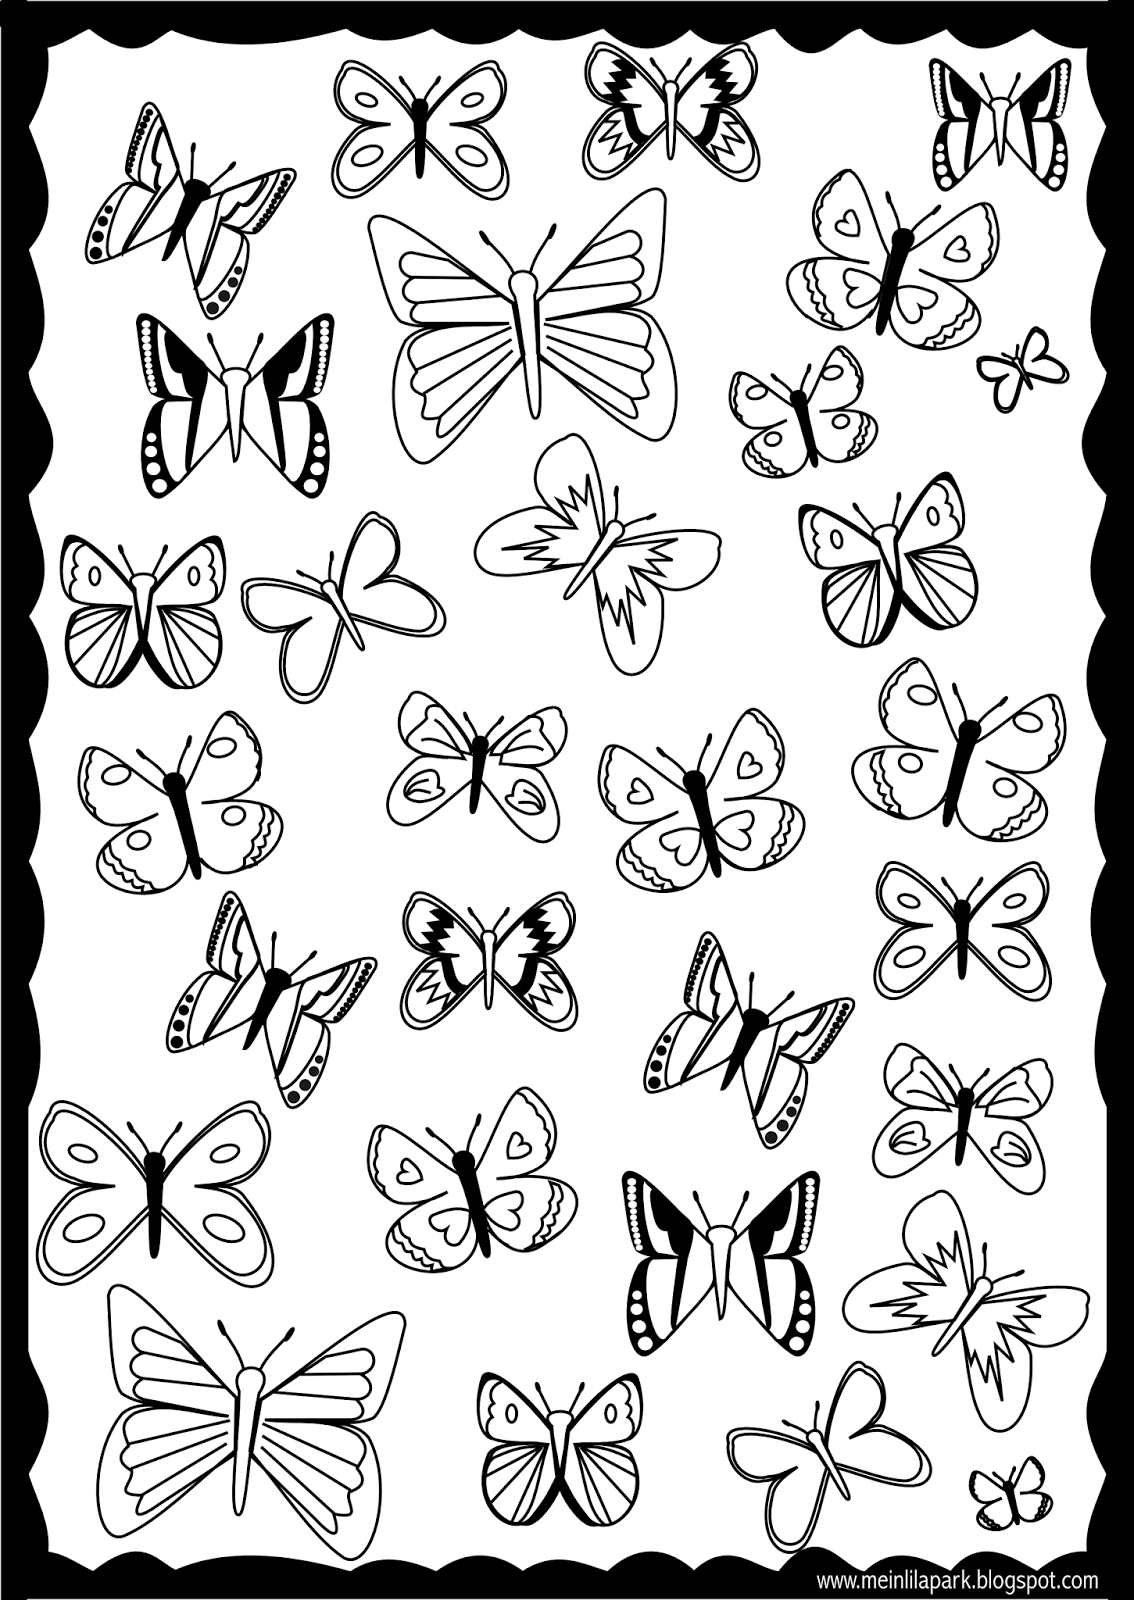 butterfly coloring sheets free printables free printable butterfly coloring page ausdruckbare sheets free coloring butterfly printables